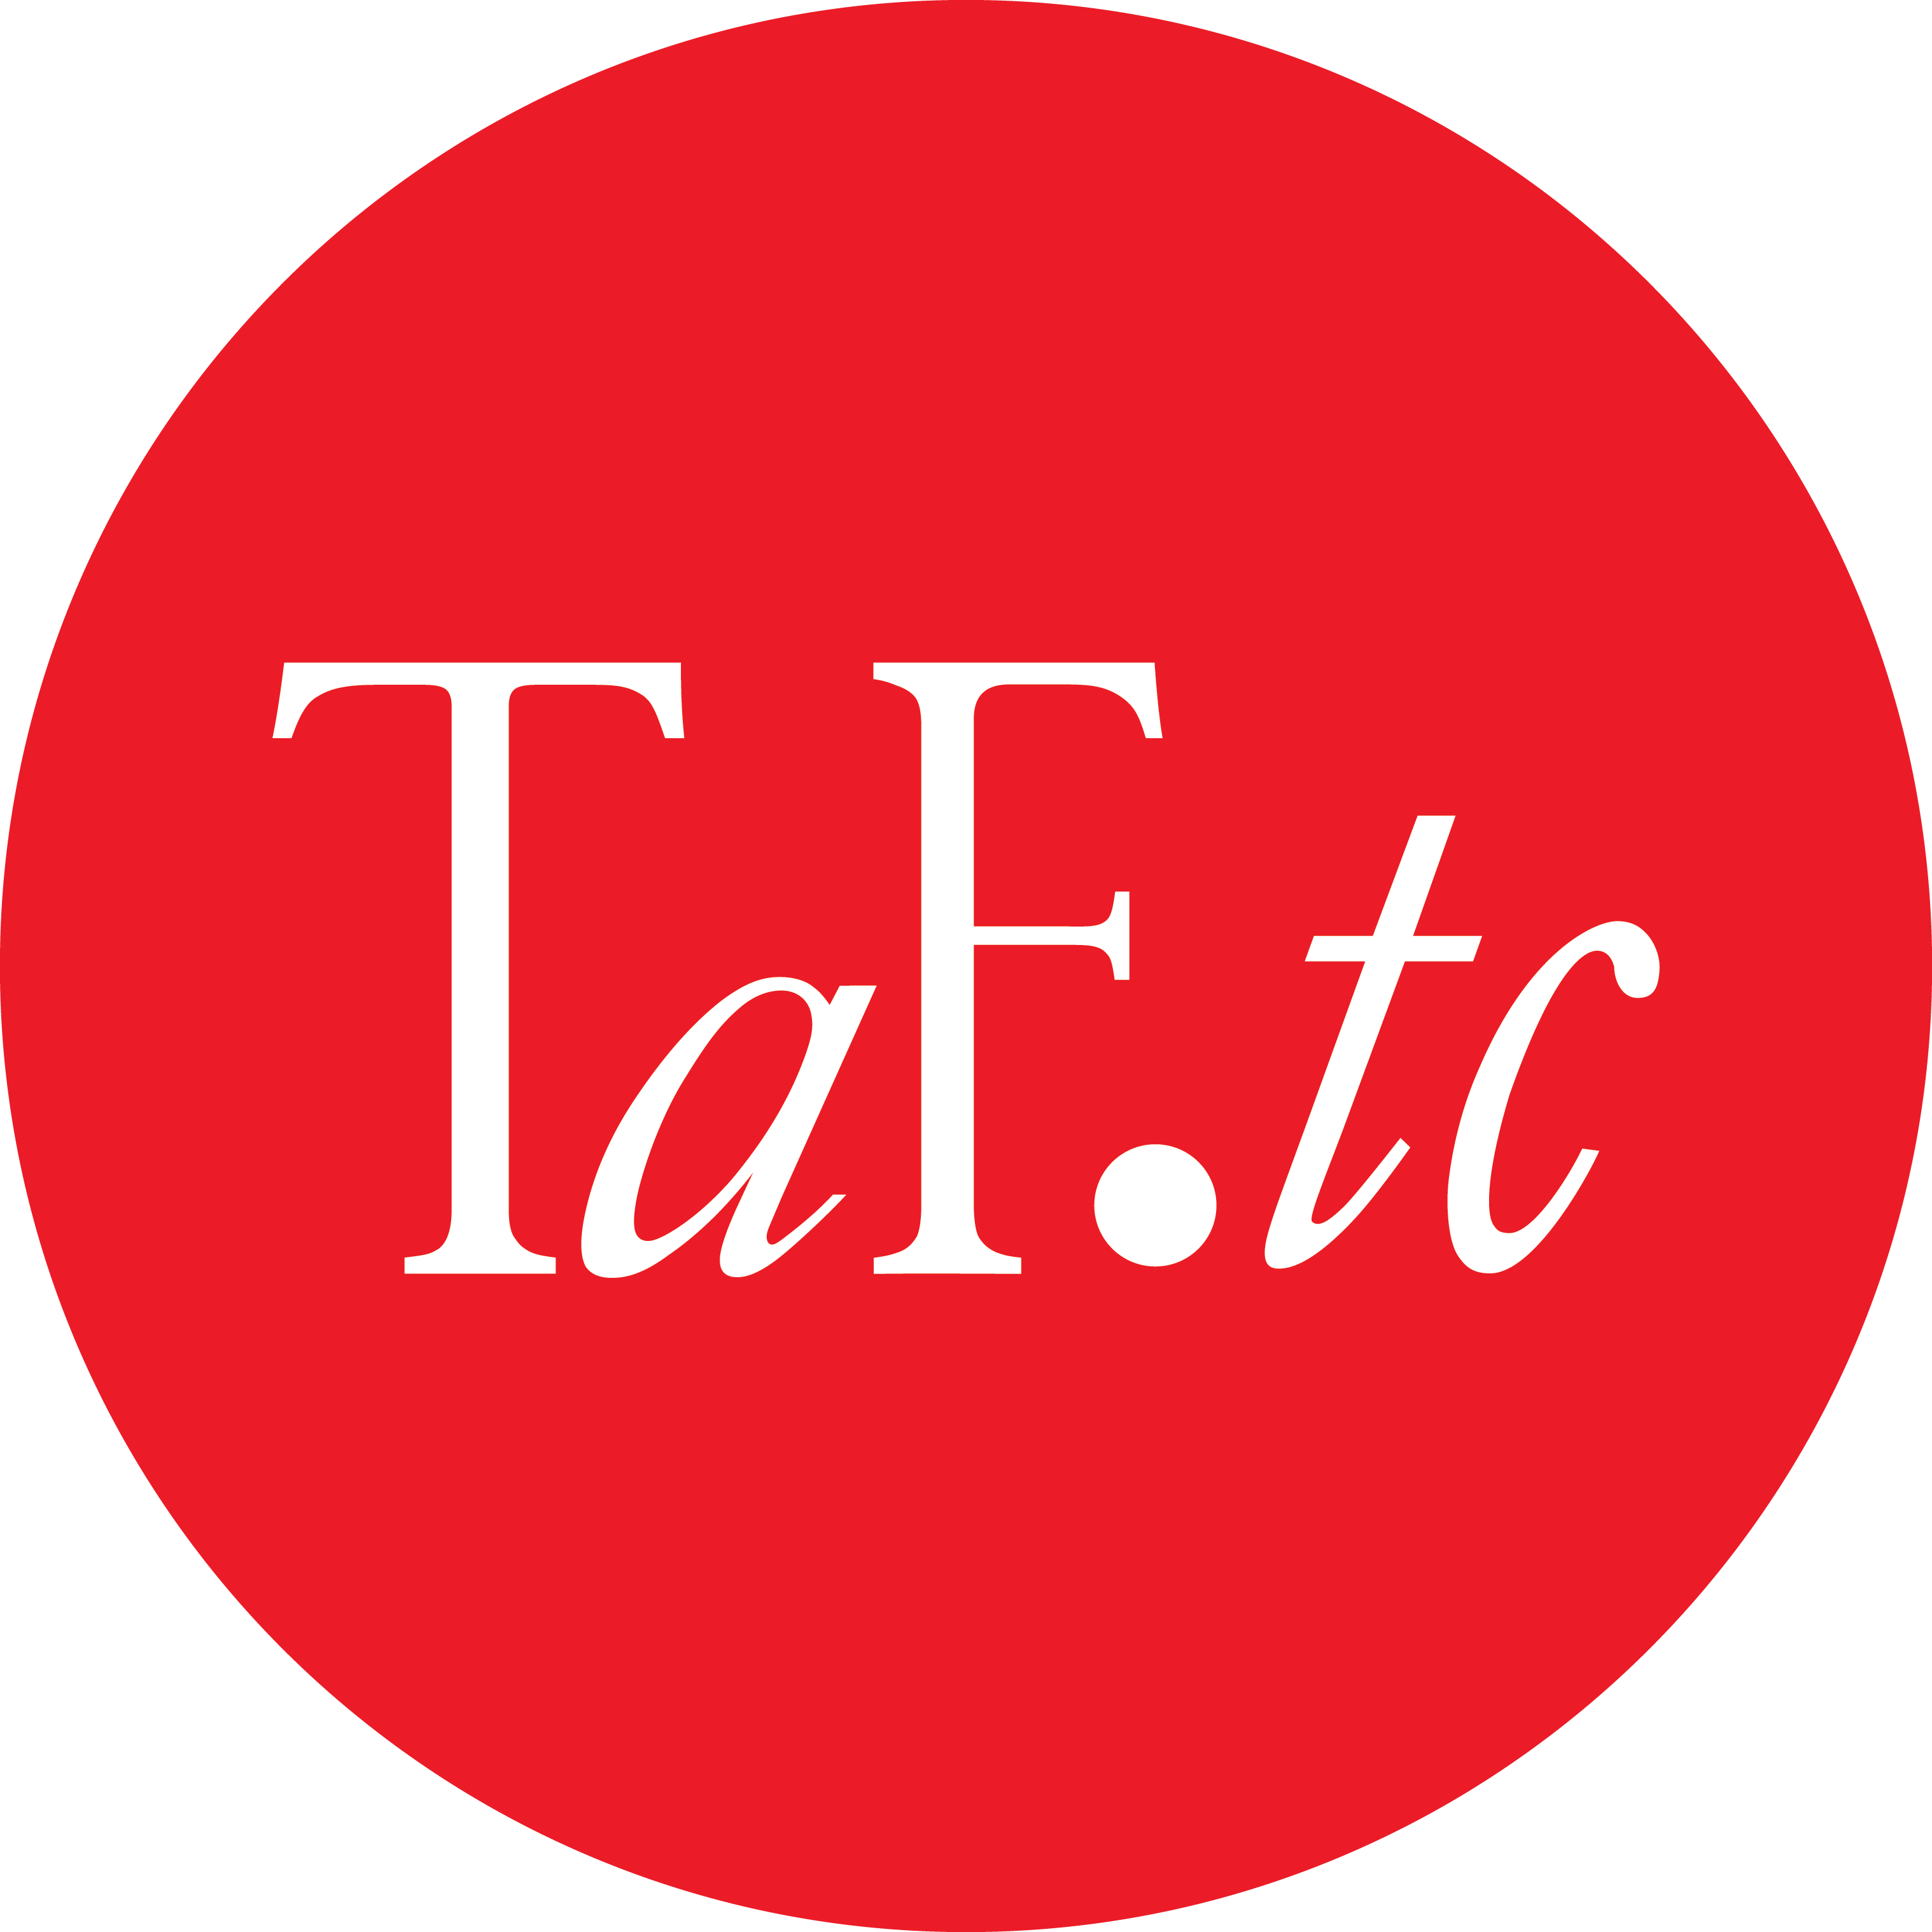 Red circle taftc logo (TRANSPARENT)